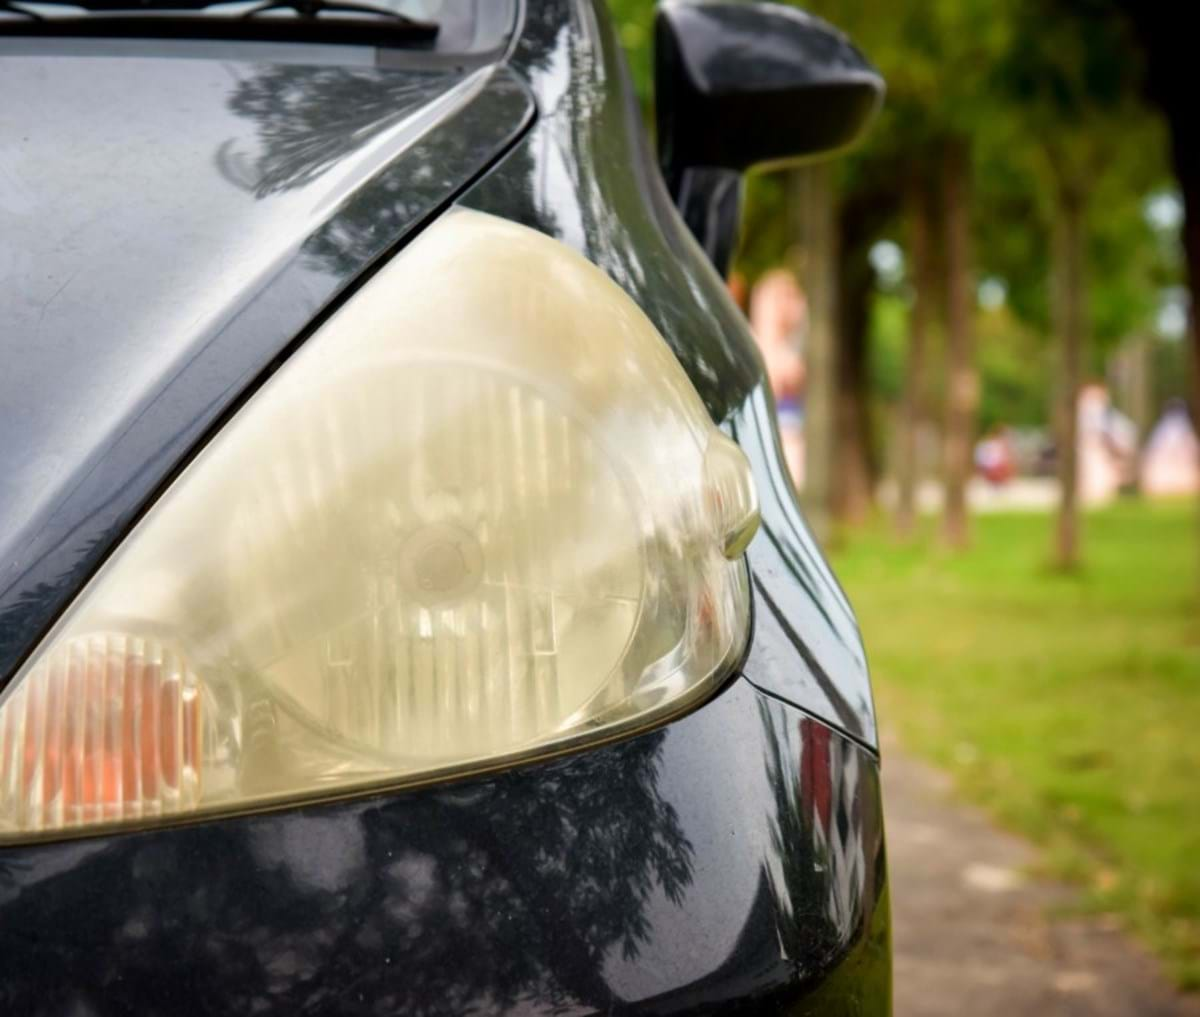 clean/restore headlights - yellow/cloudy headlight